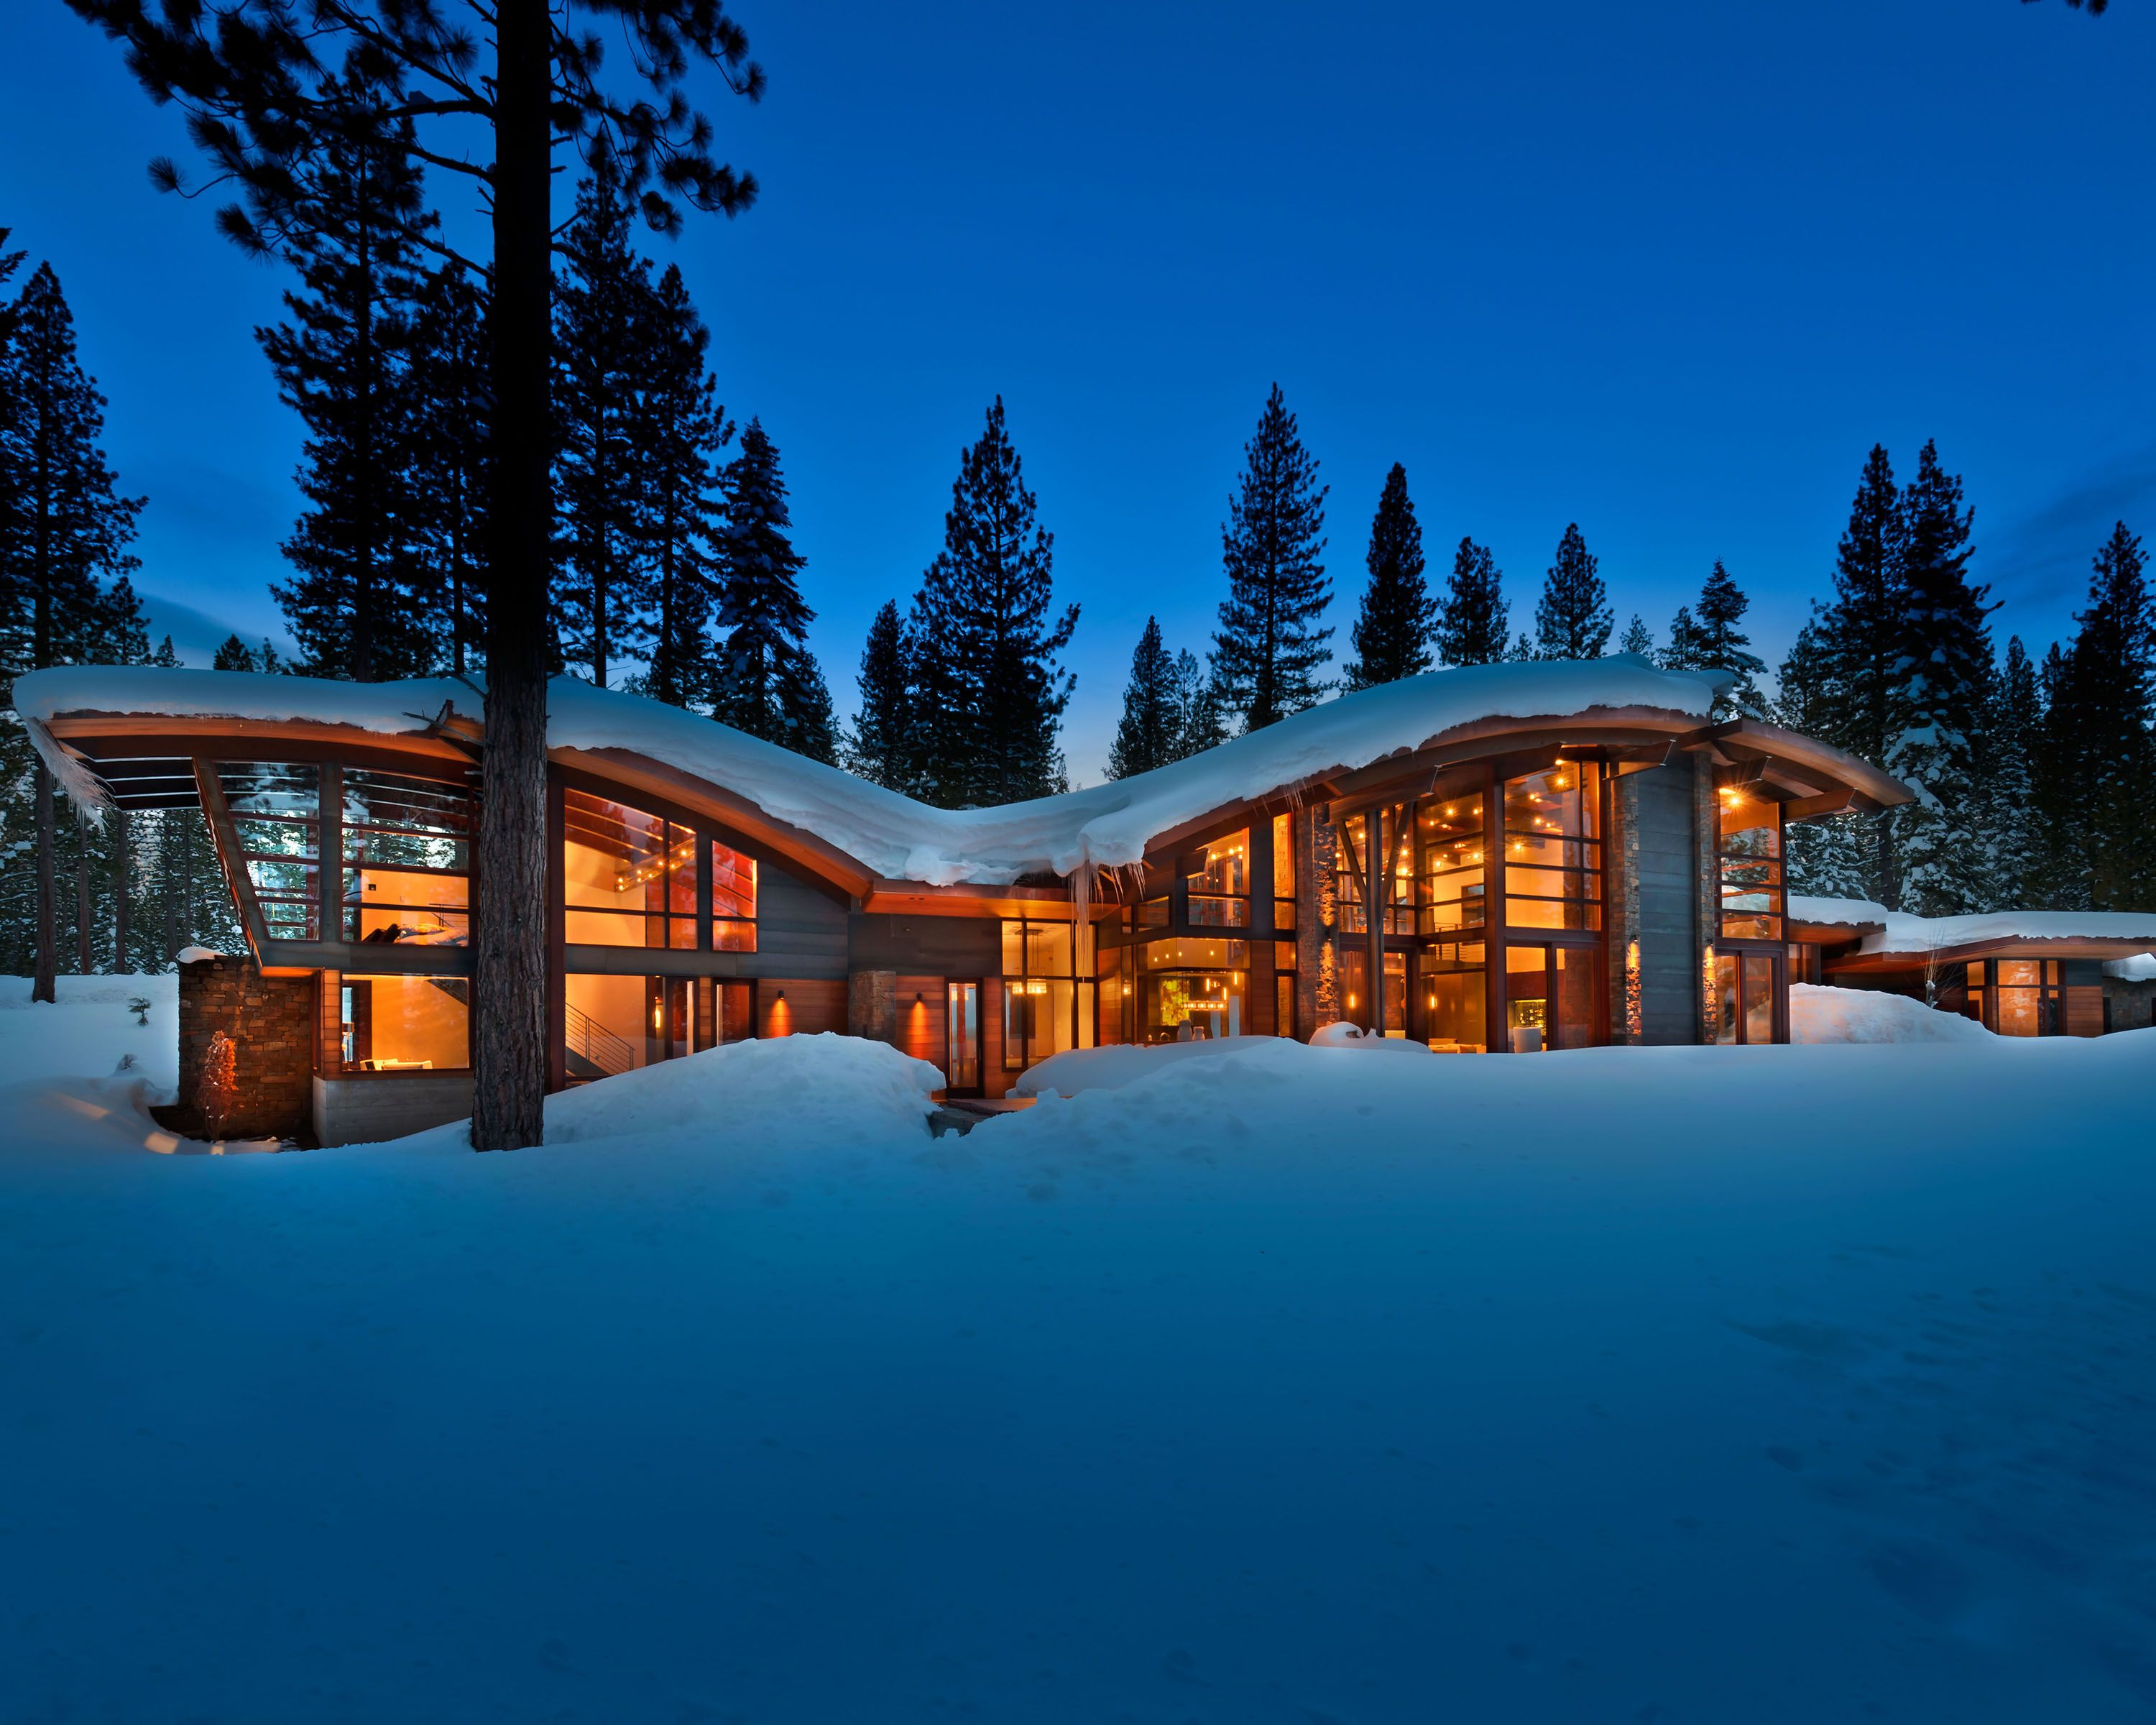 The Snow Covered Exterior Of Modern Mountain Cabin